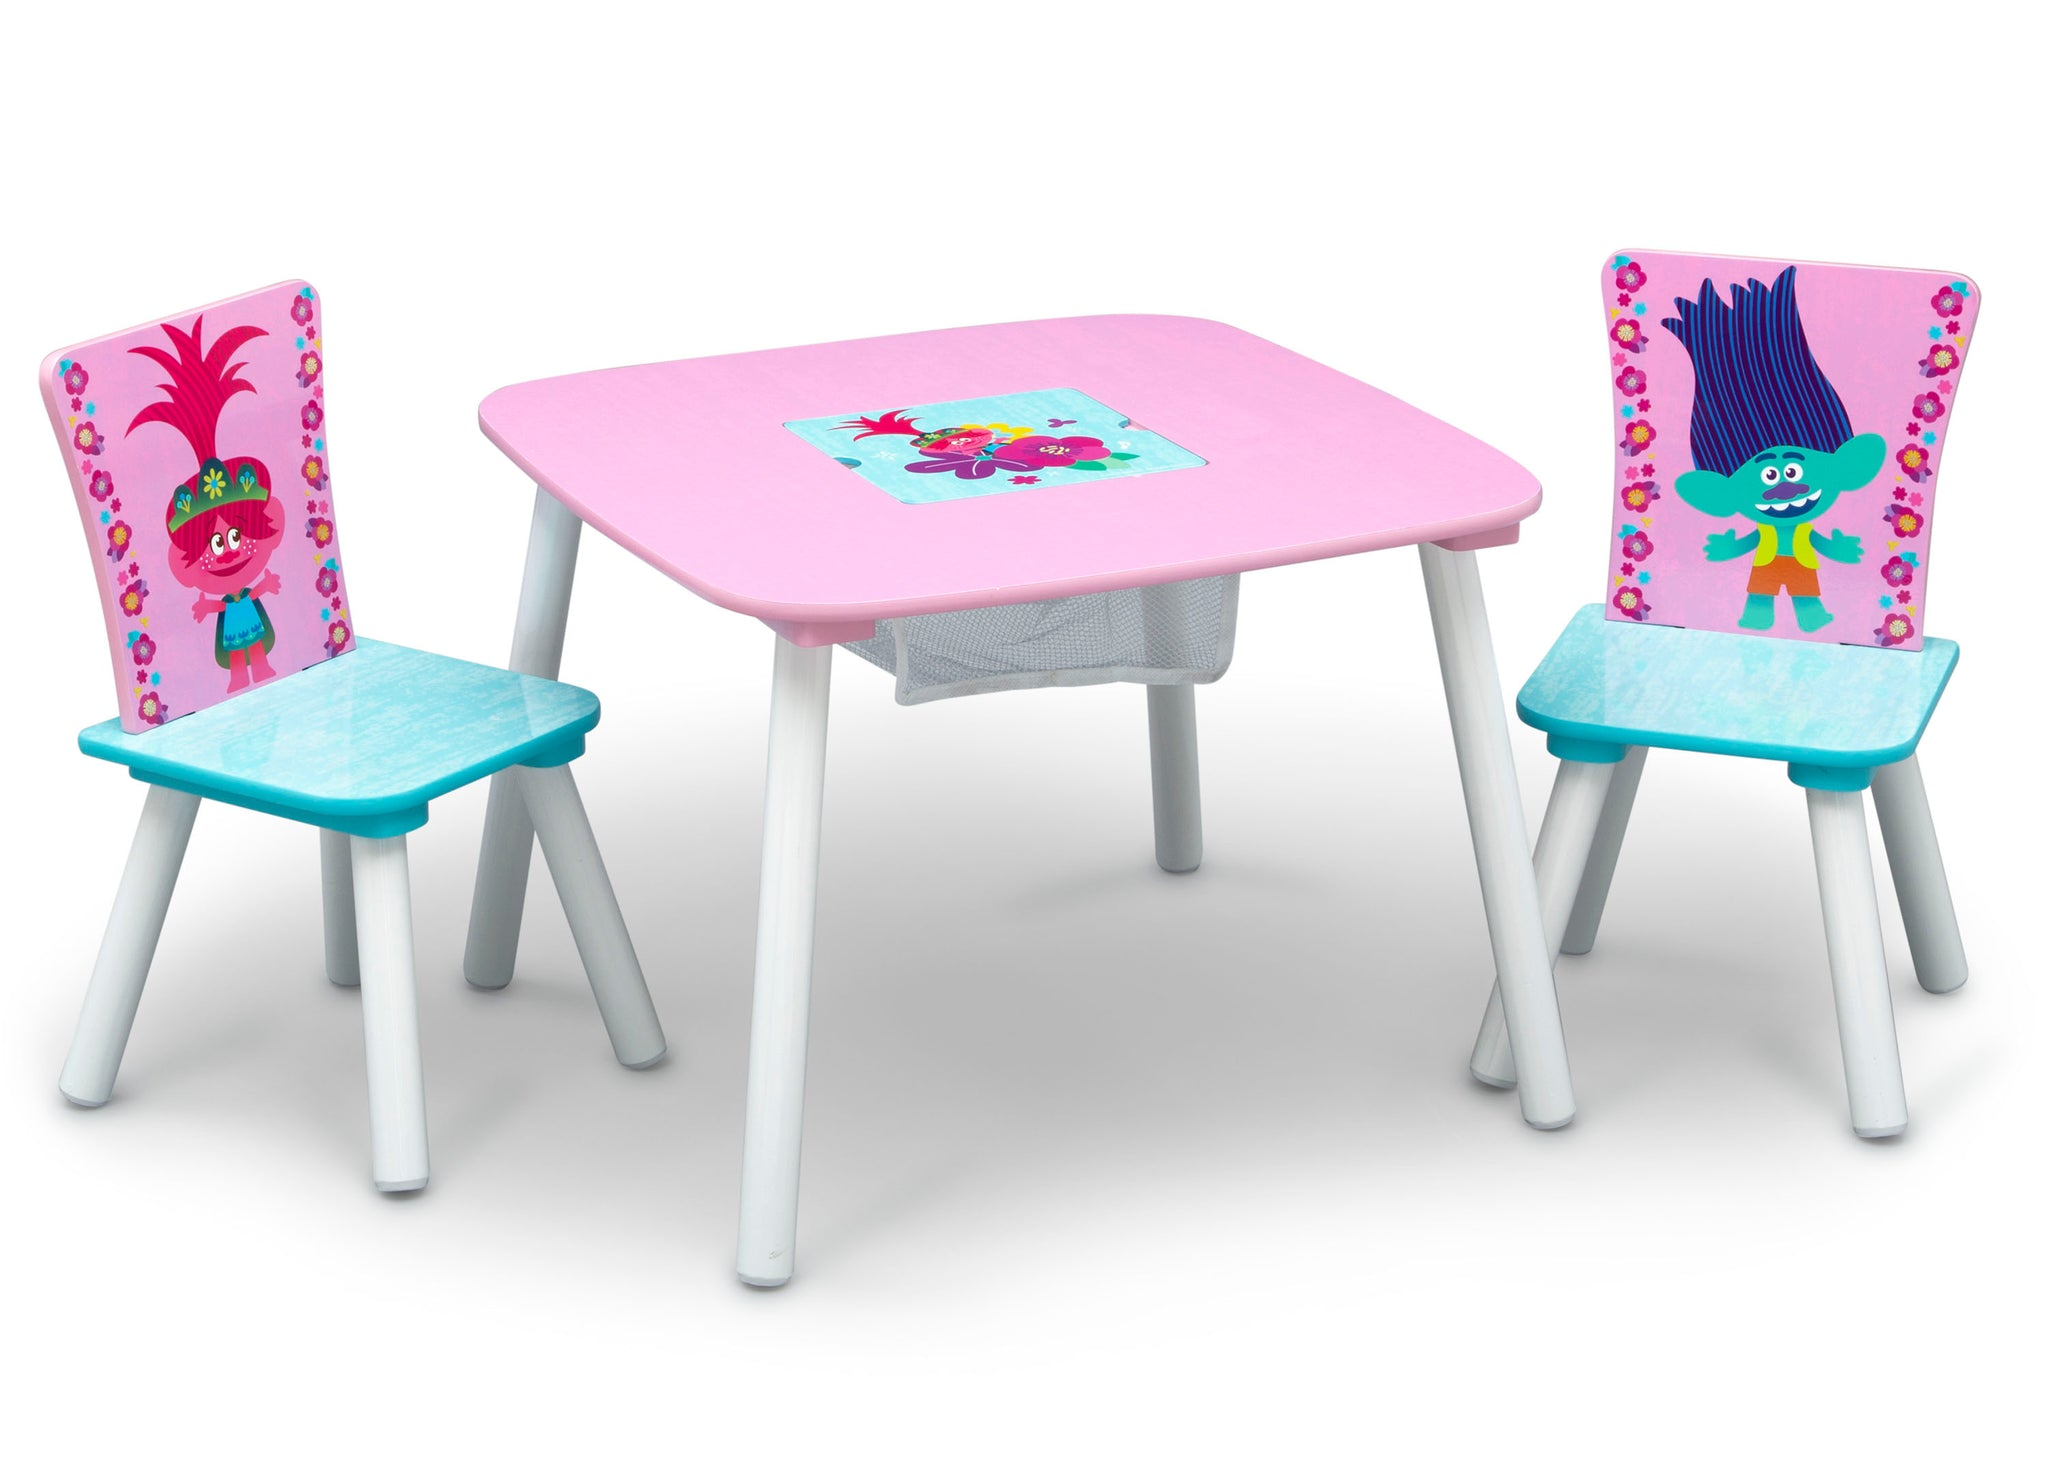 Delta Children Trolls World Tour (1177) Table and Chair Set with Storage, Right Silo View